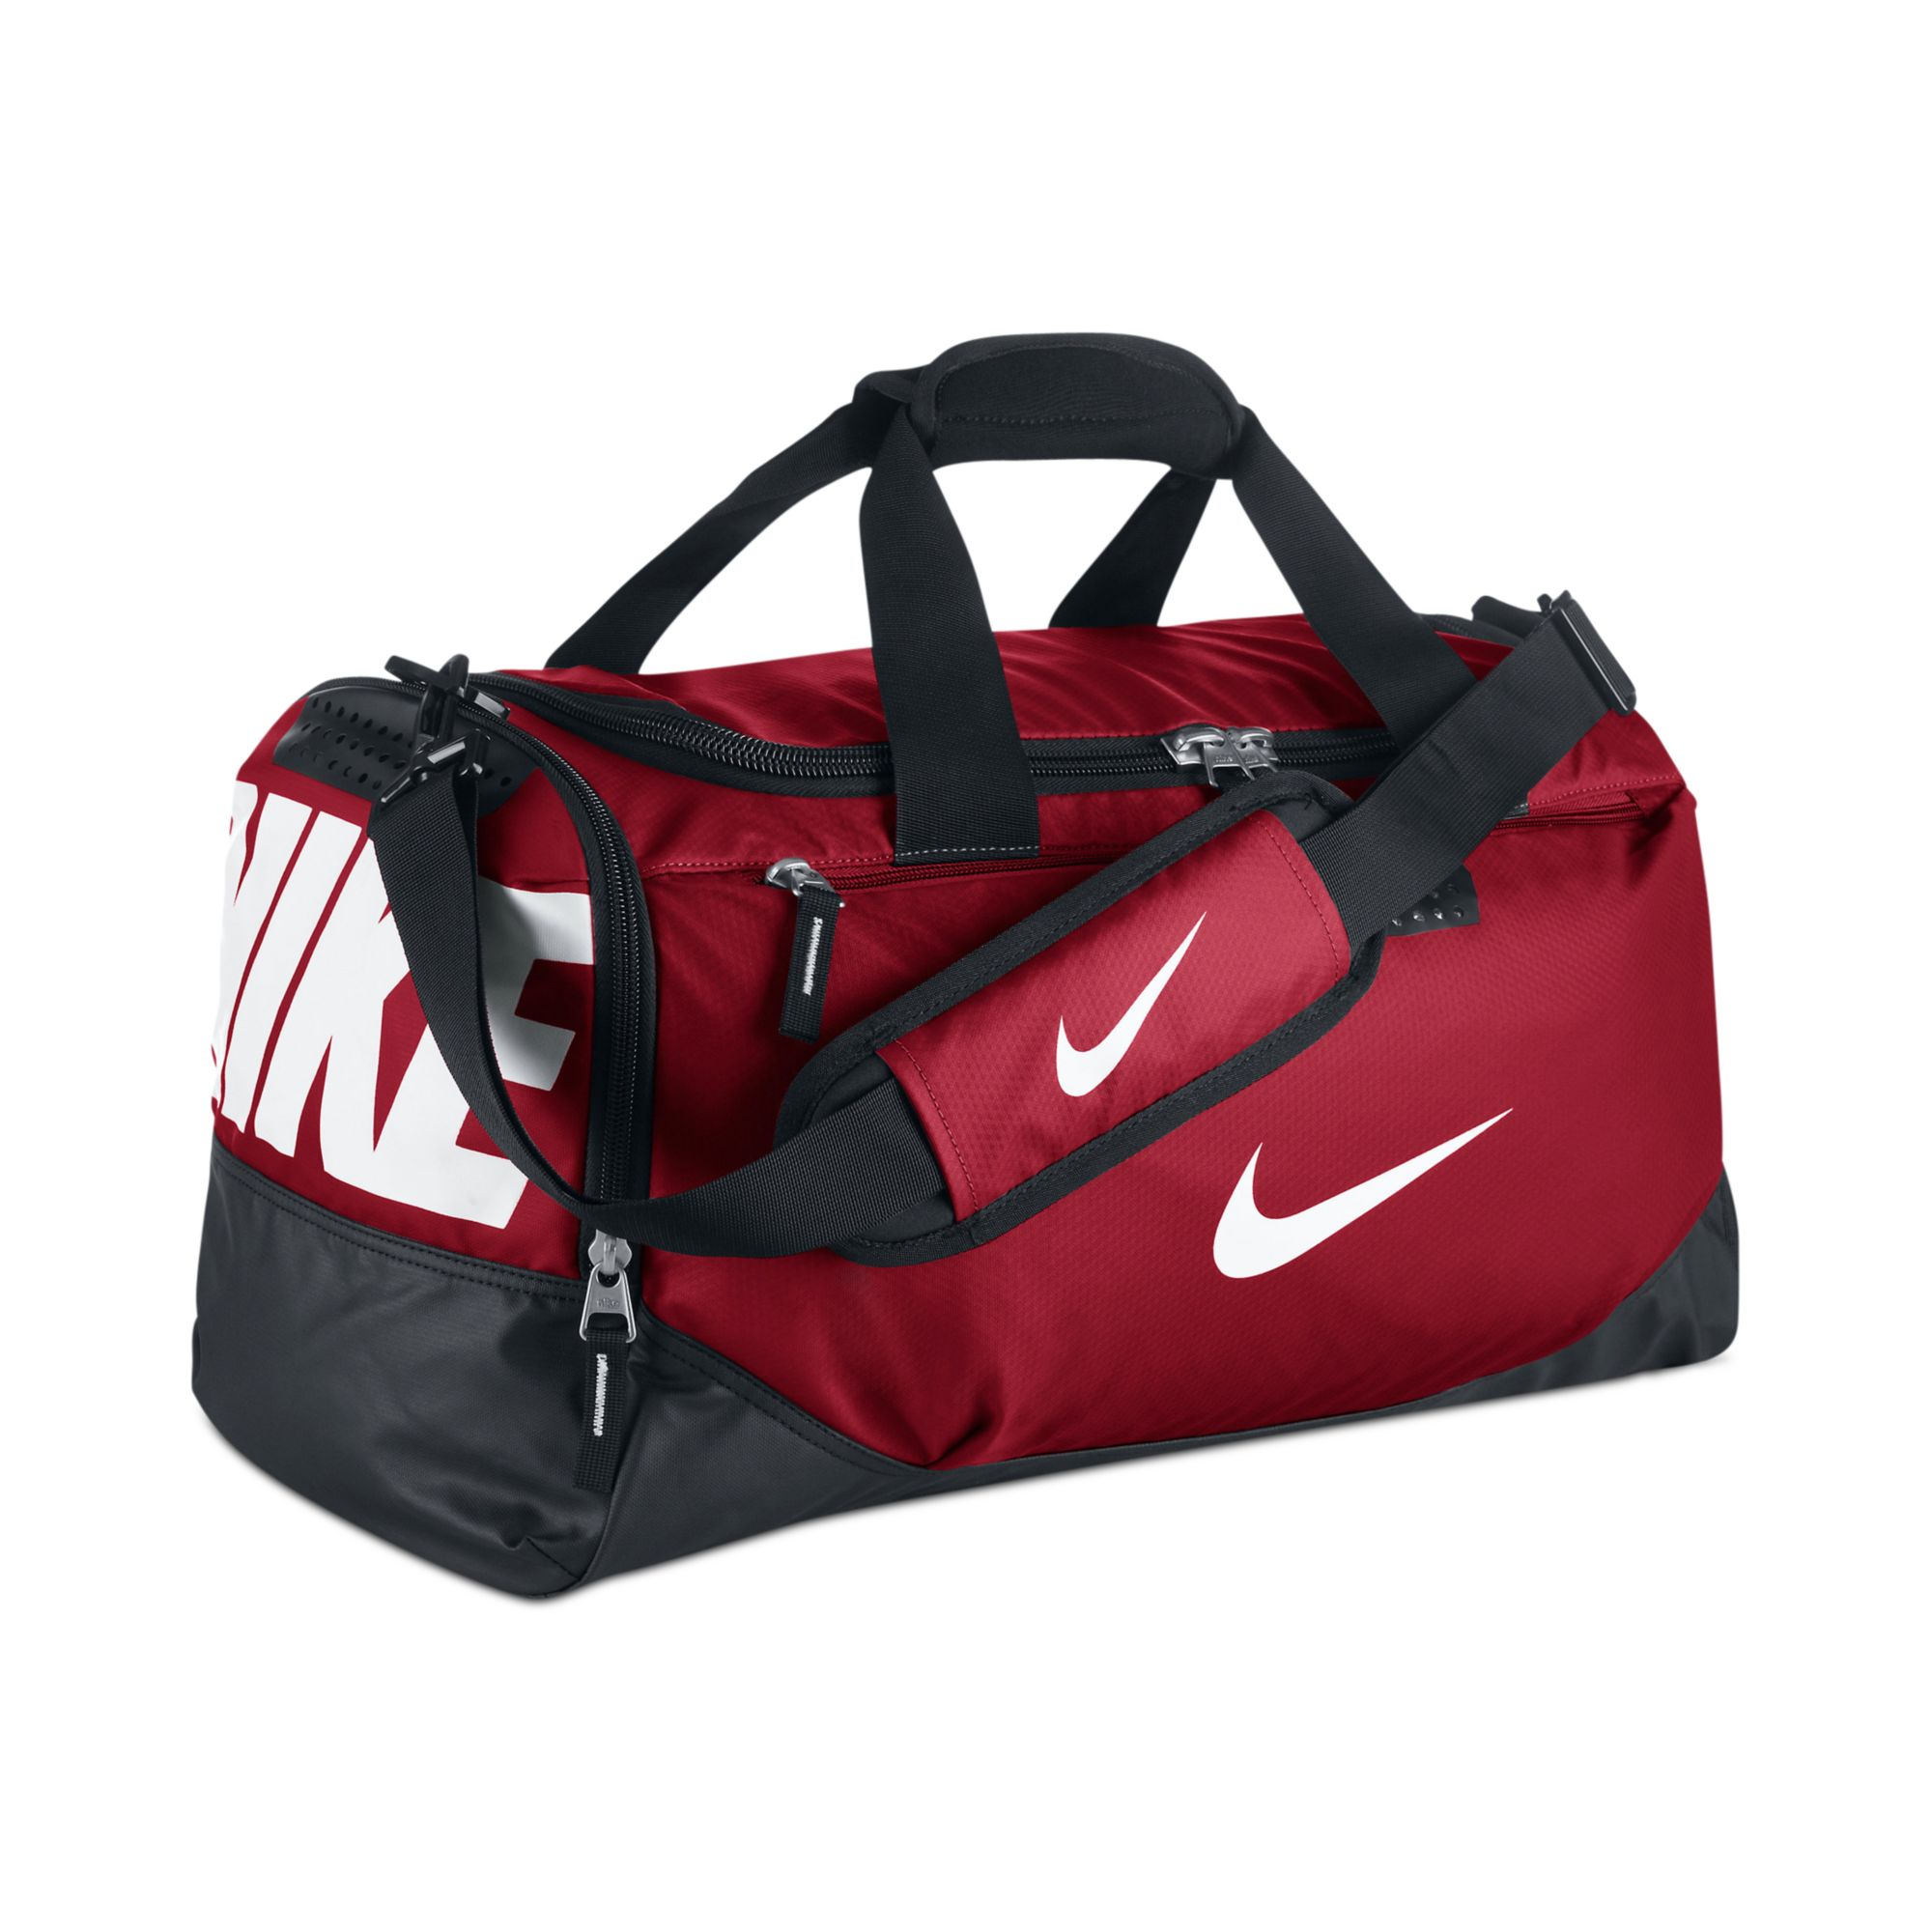 ... Bag (Red Black White)  Lyst - Nike Team Training Small Duffle in Red  for Men ... 6d41039558a02